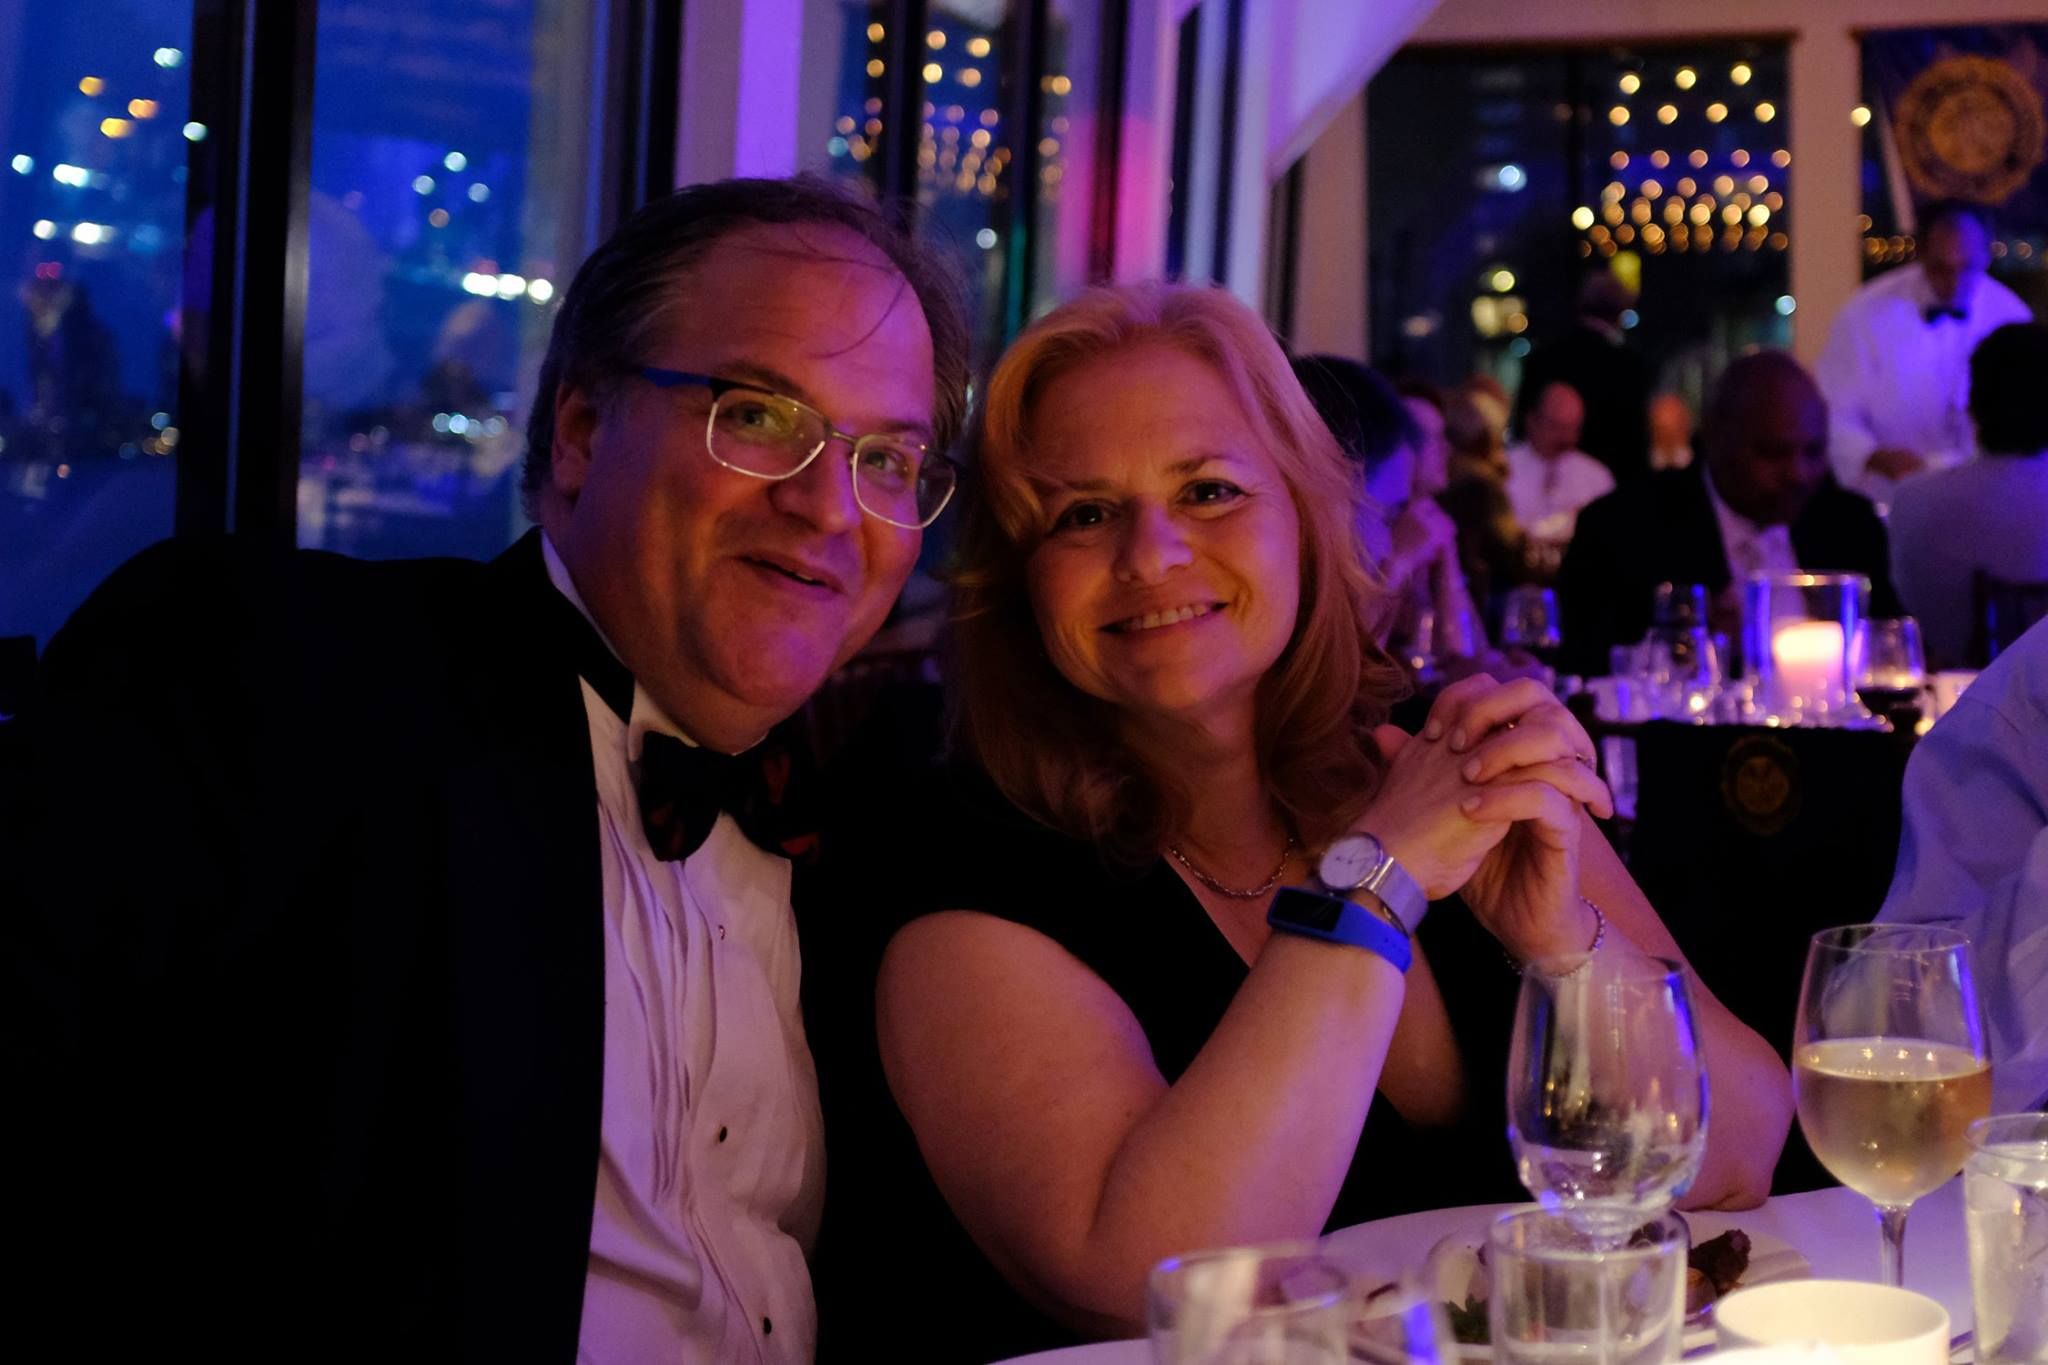 The NYPPA 82nd Annual Year in Pictures Dinner and Dance at the Water Club in Manhattan, NY on June 30, 2017